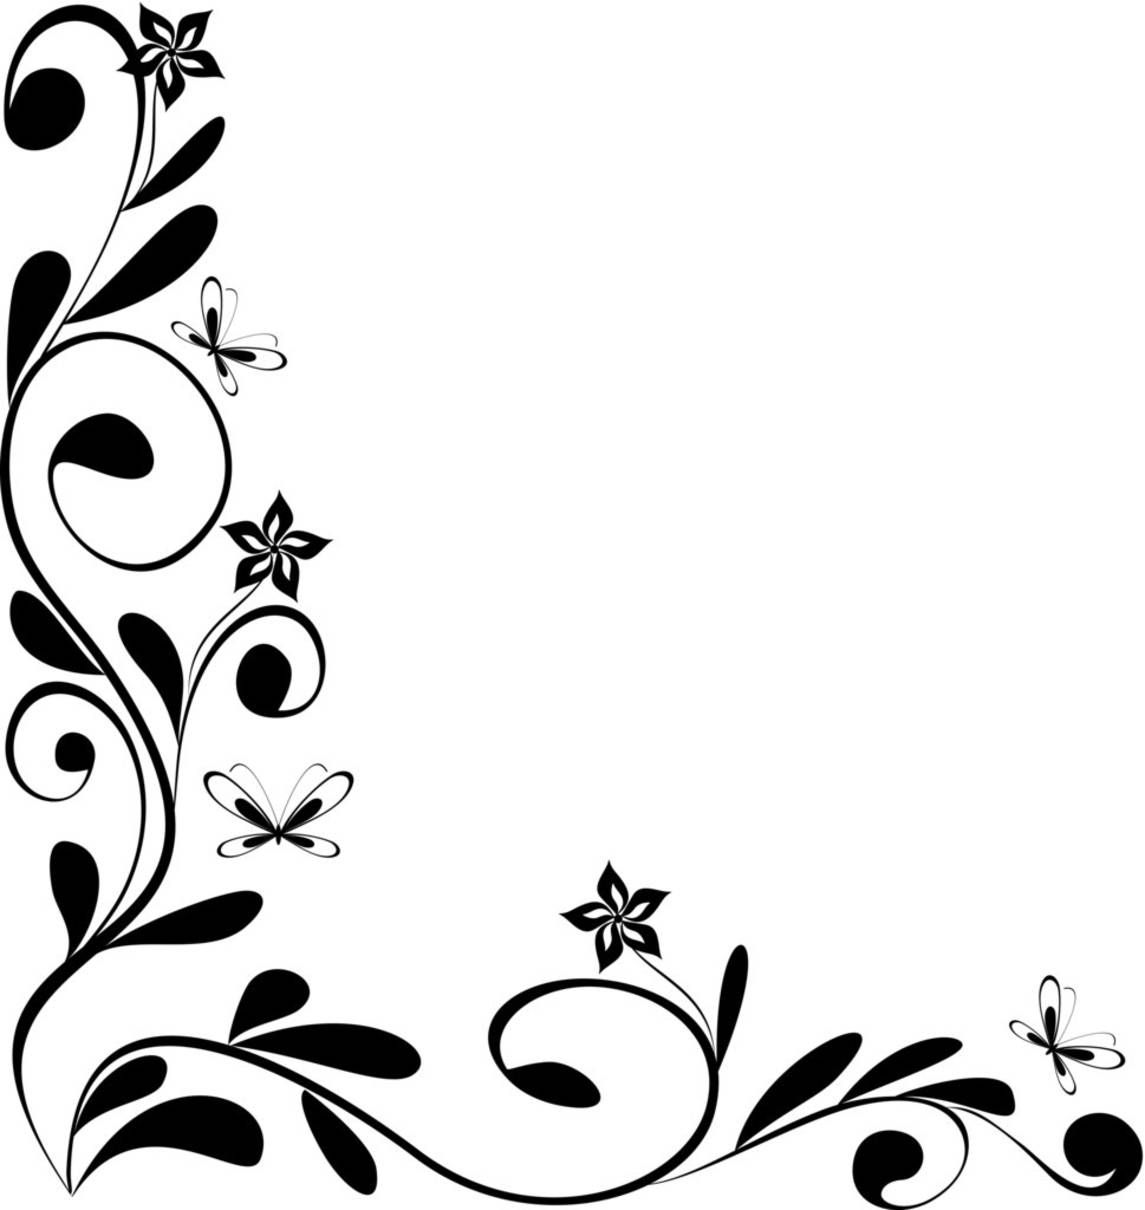 Black And White Floral Corner Drawings Border Design Design